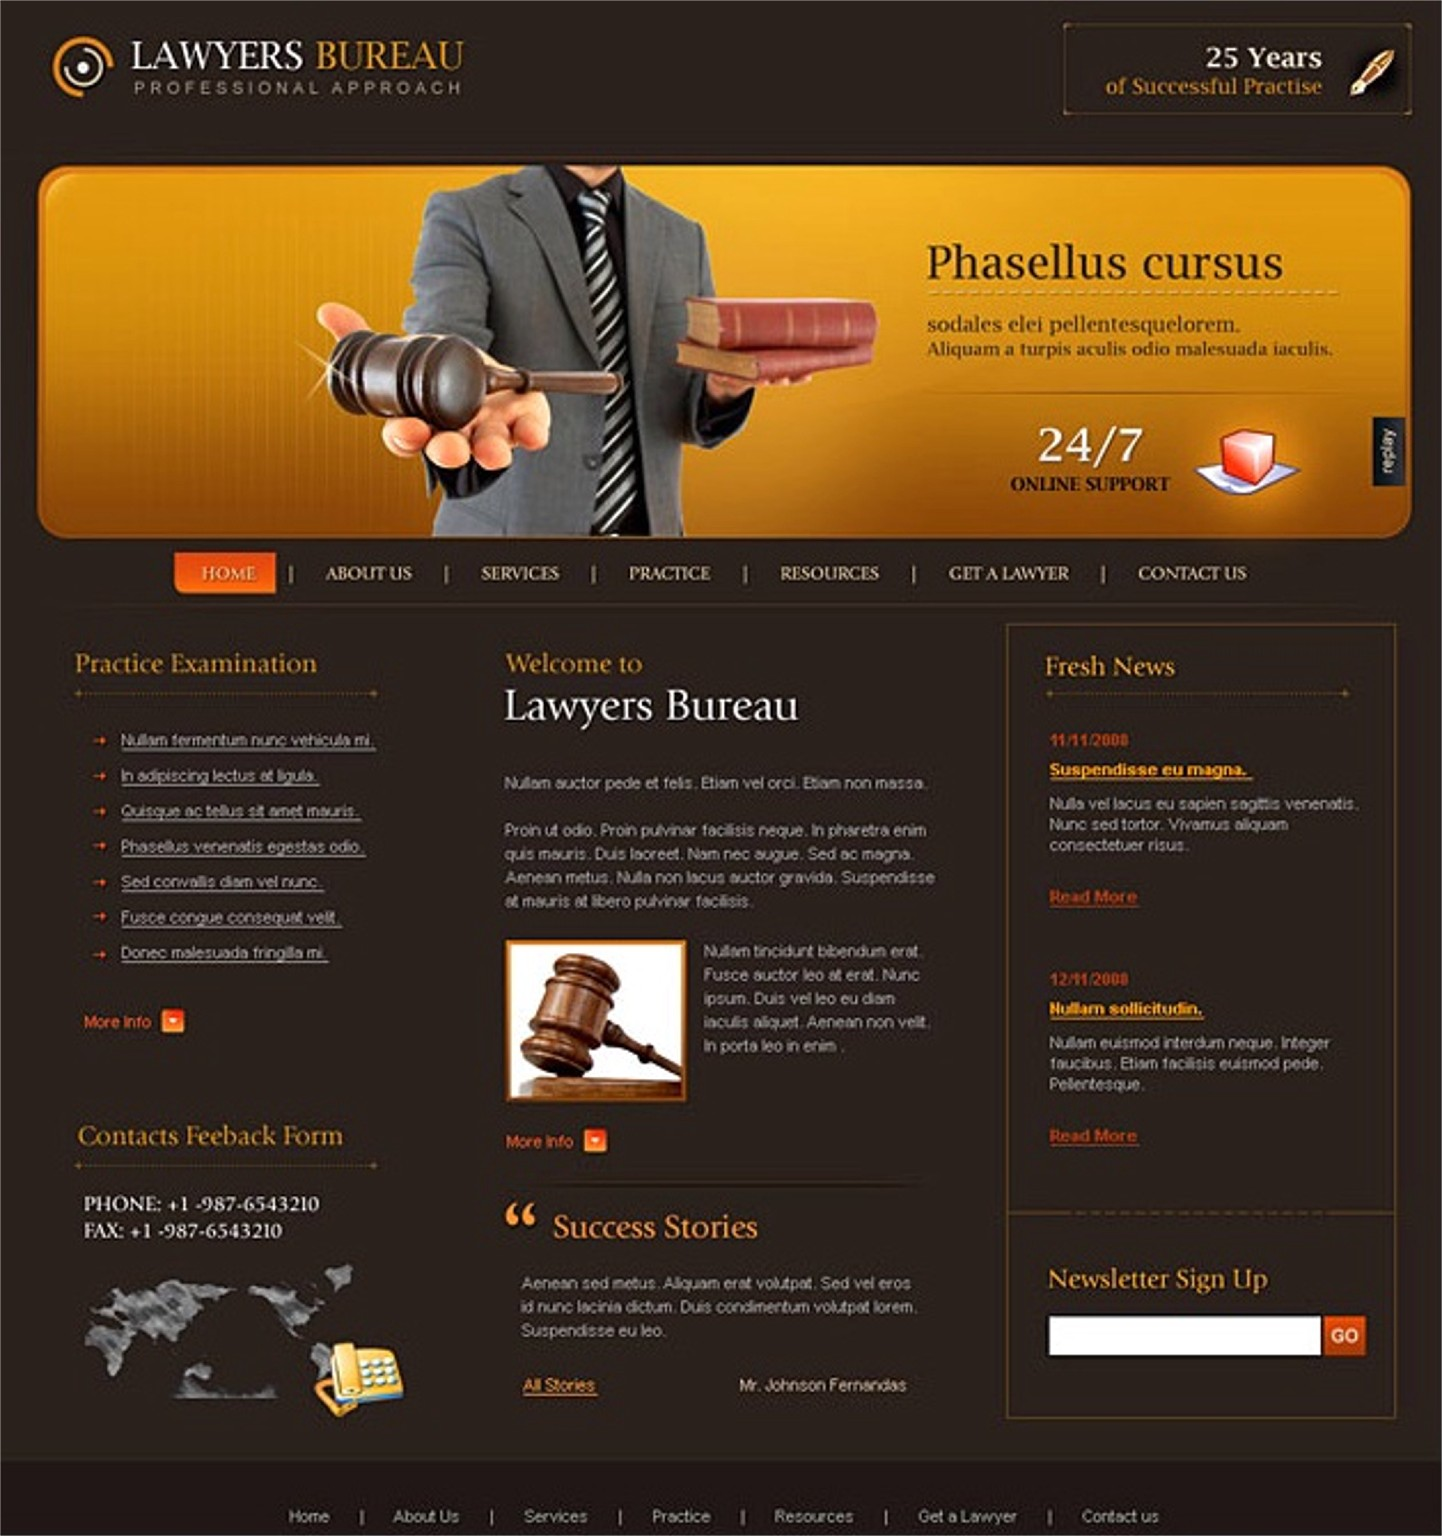 JRL-Enterprises LLC Web Templates10135